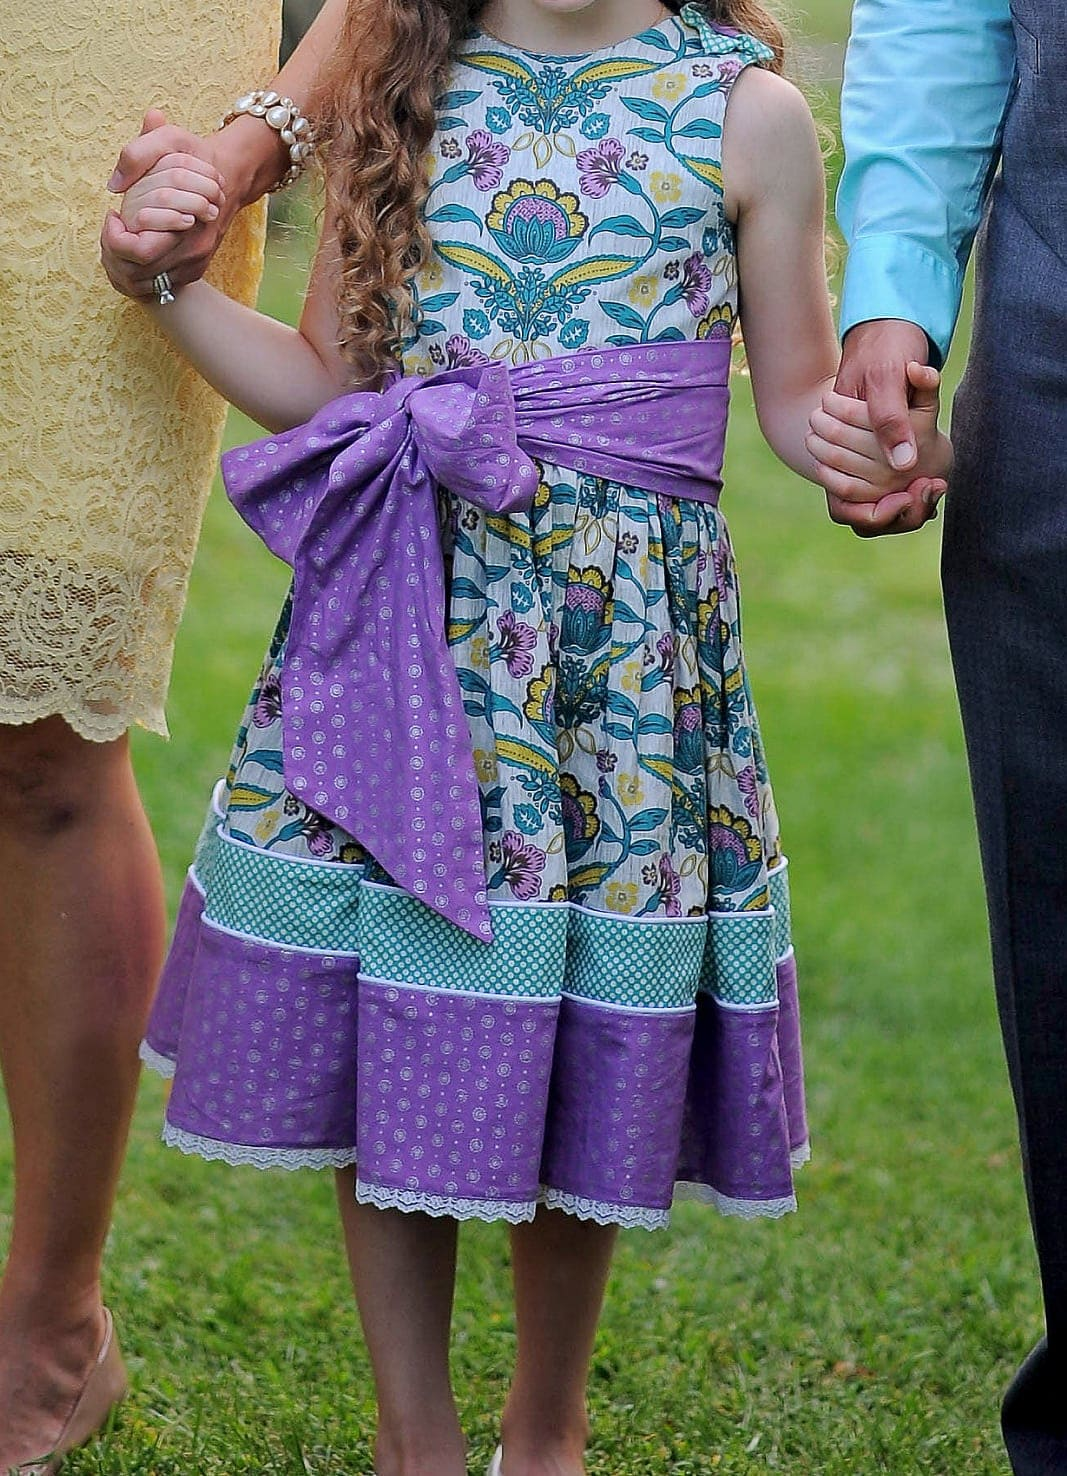 Special occasions are the perfect time to get creative with fabrics. These dresses and accessories were custom designed to create a whimsical and cohesive look for a family's Adoption Day celebration! Photos: http://www.amandamcmahonblog.com | Dress design: vintagekitty.com